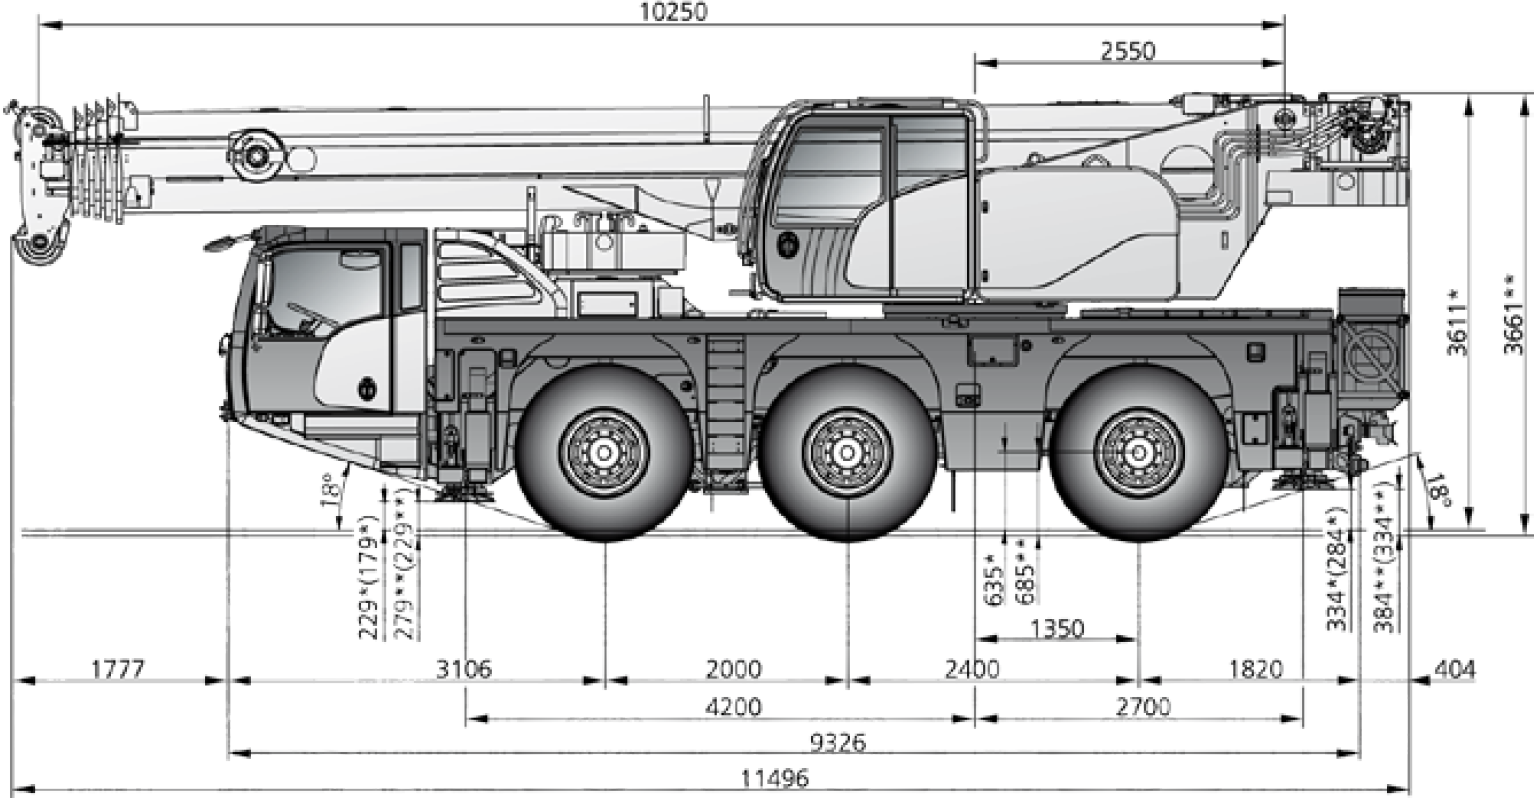 55 ton crane hire Dimensions Diagram